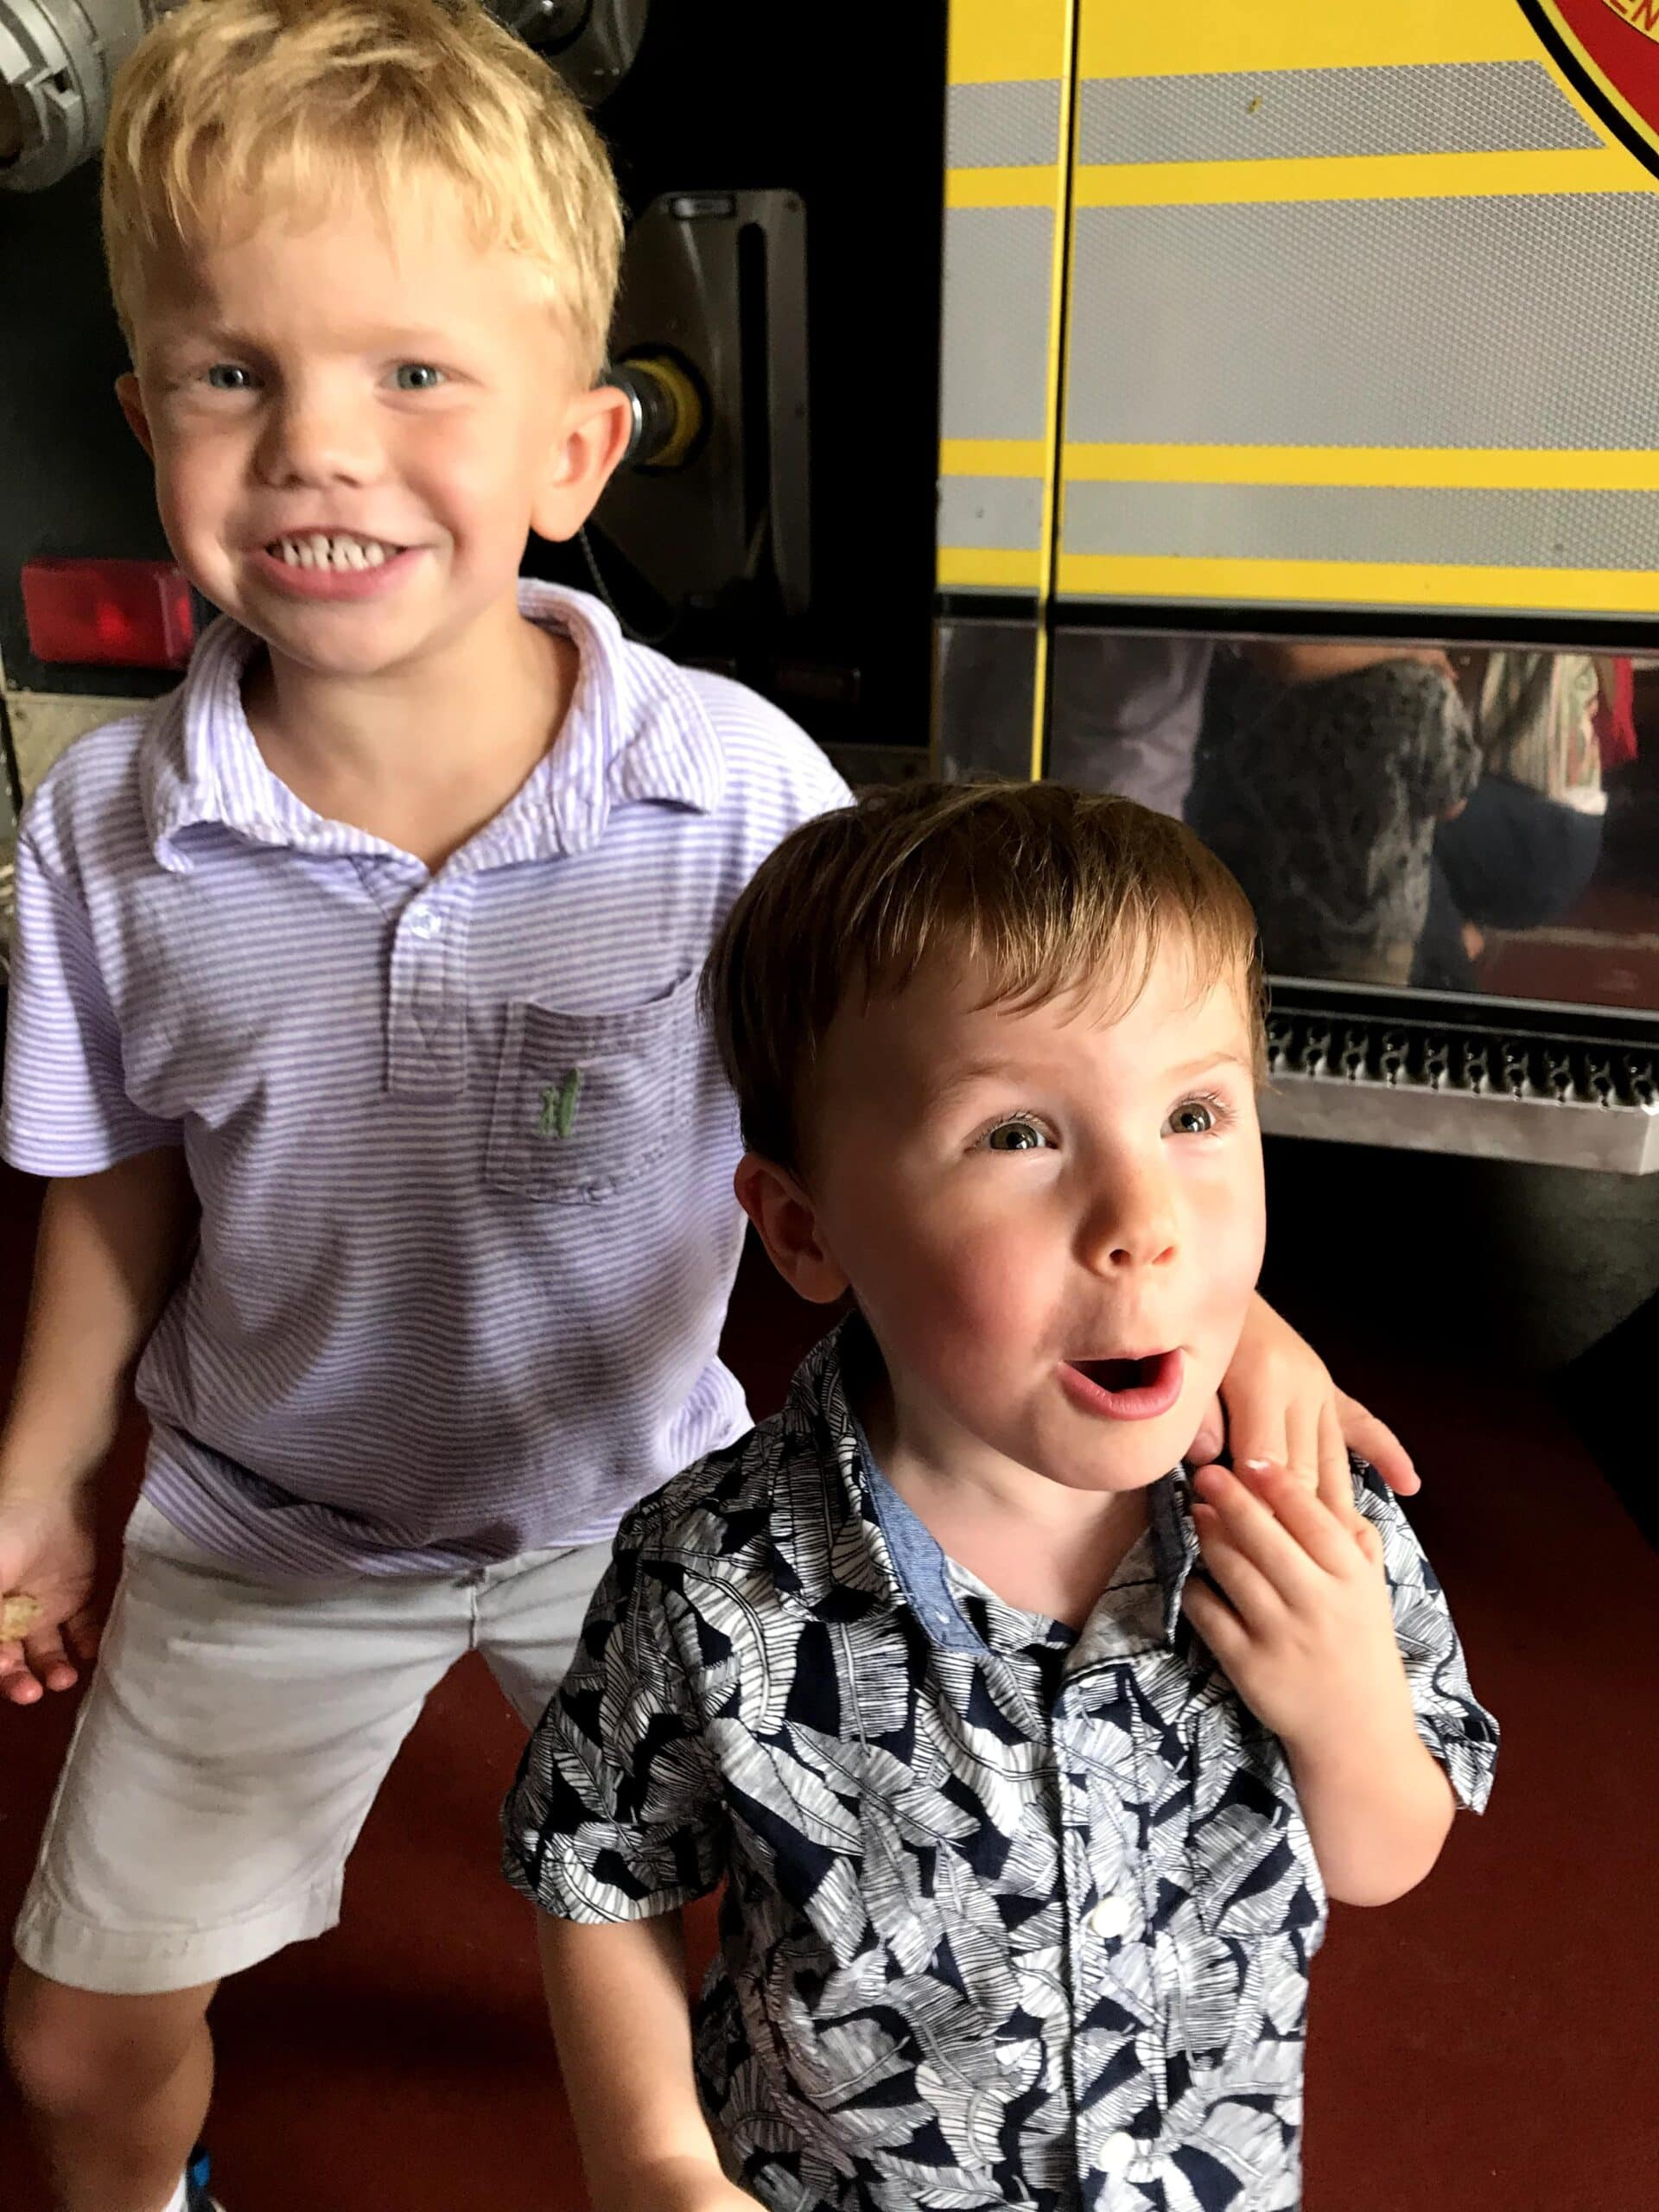 Kids excited to be at a firestation